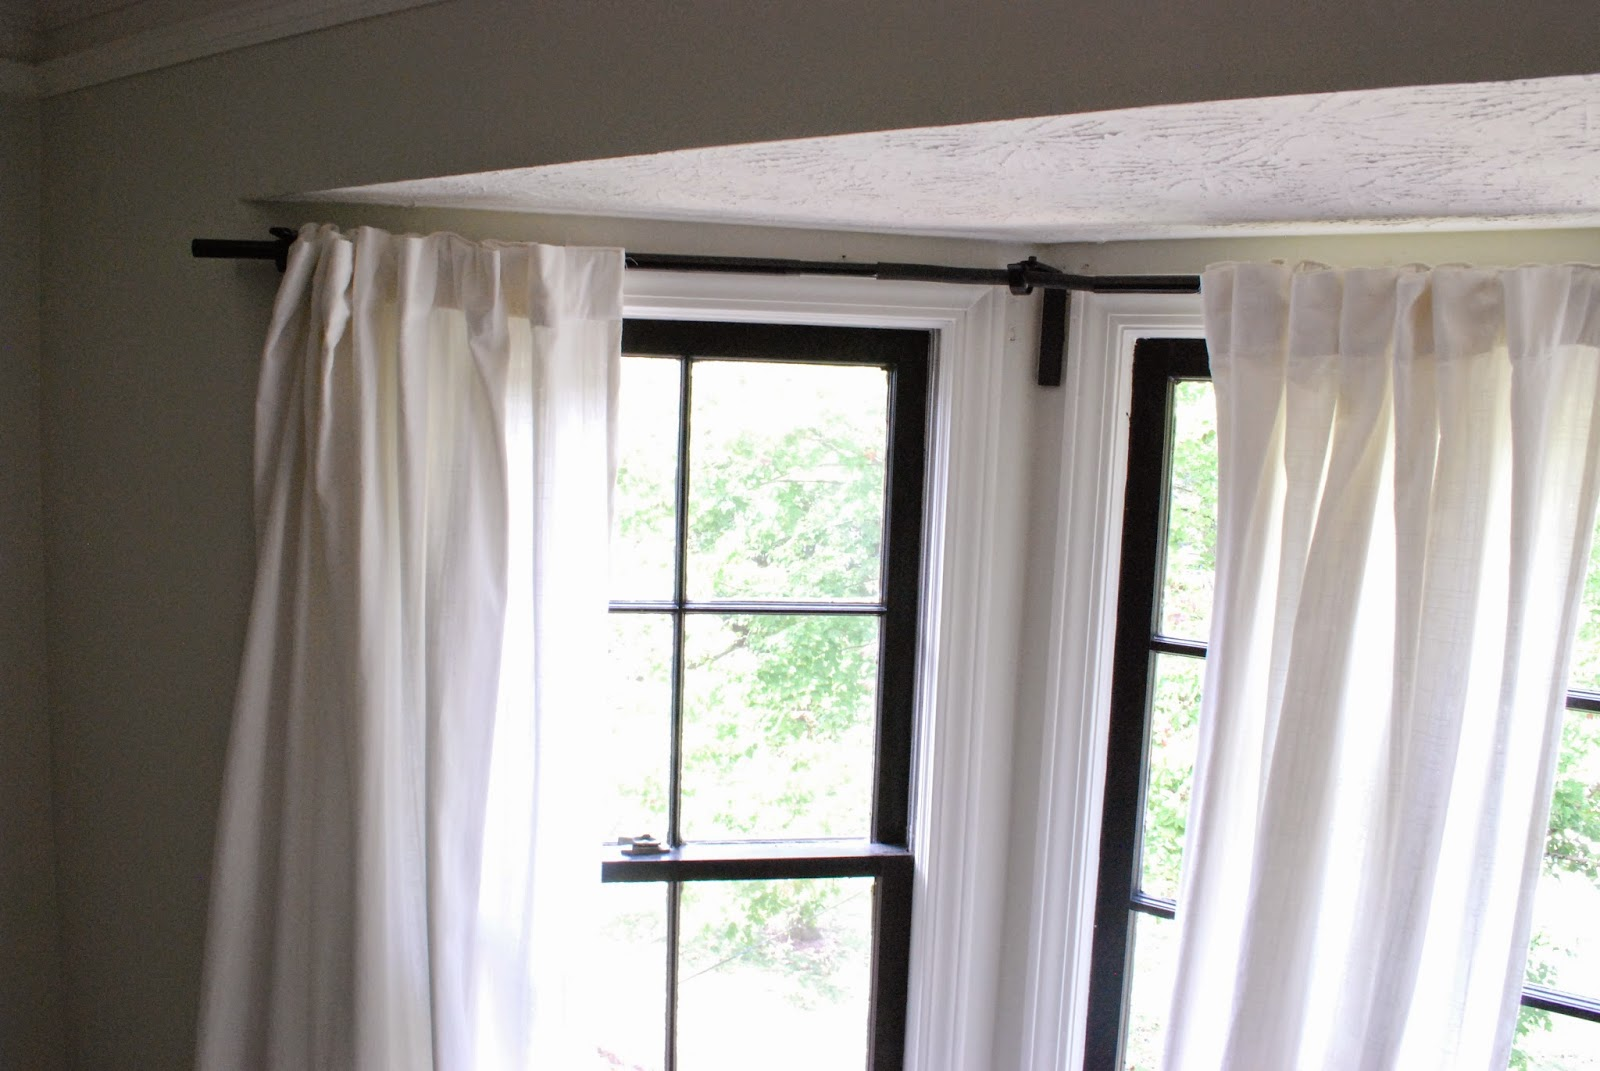 Bay window curtain rod ceiling mount - Bay Window Curtain Rod